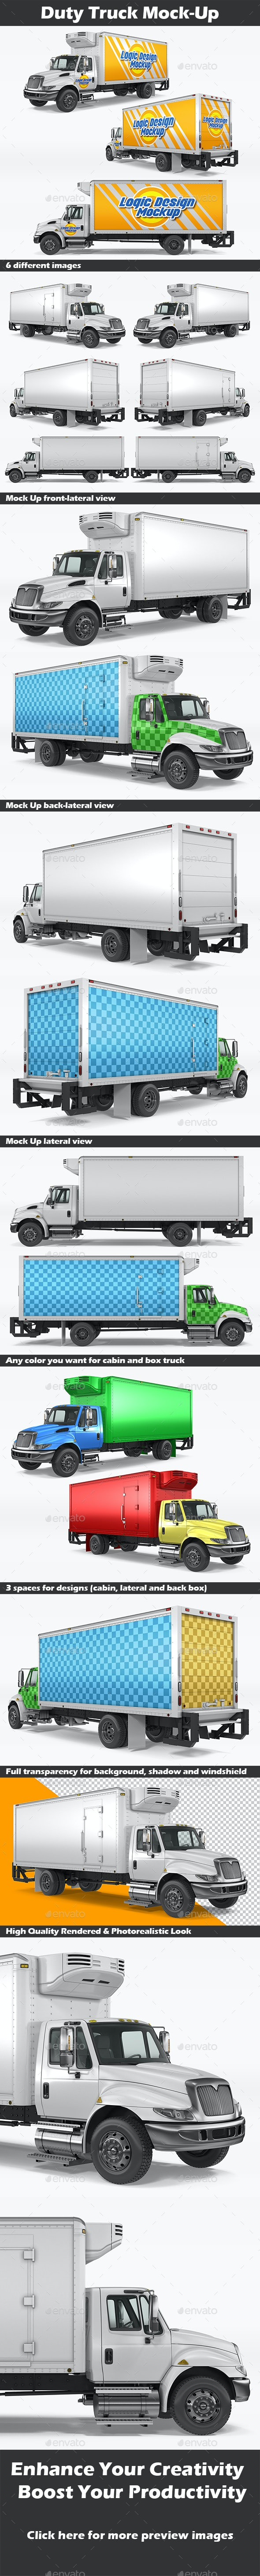 Duty Truck Mock-Up - Vehicle Wraps Print